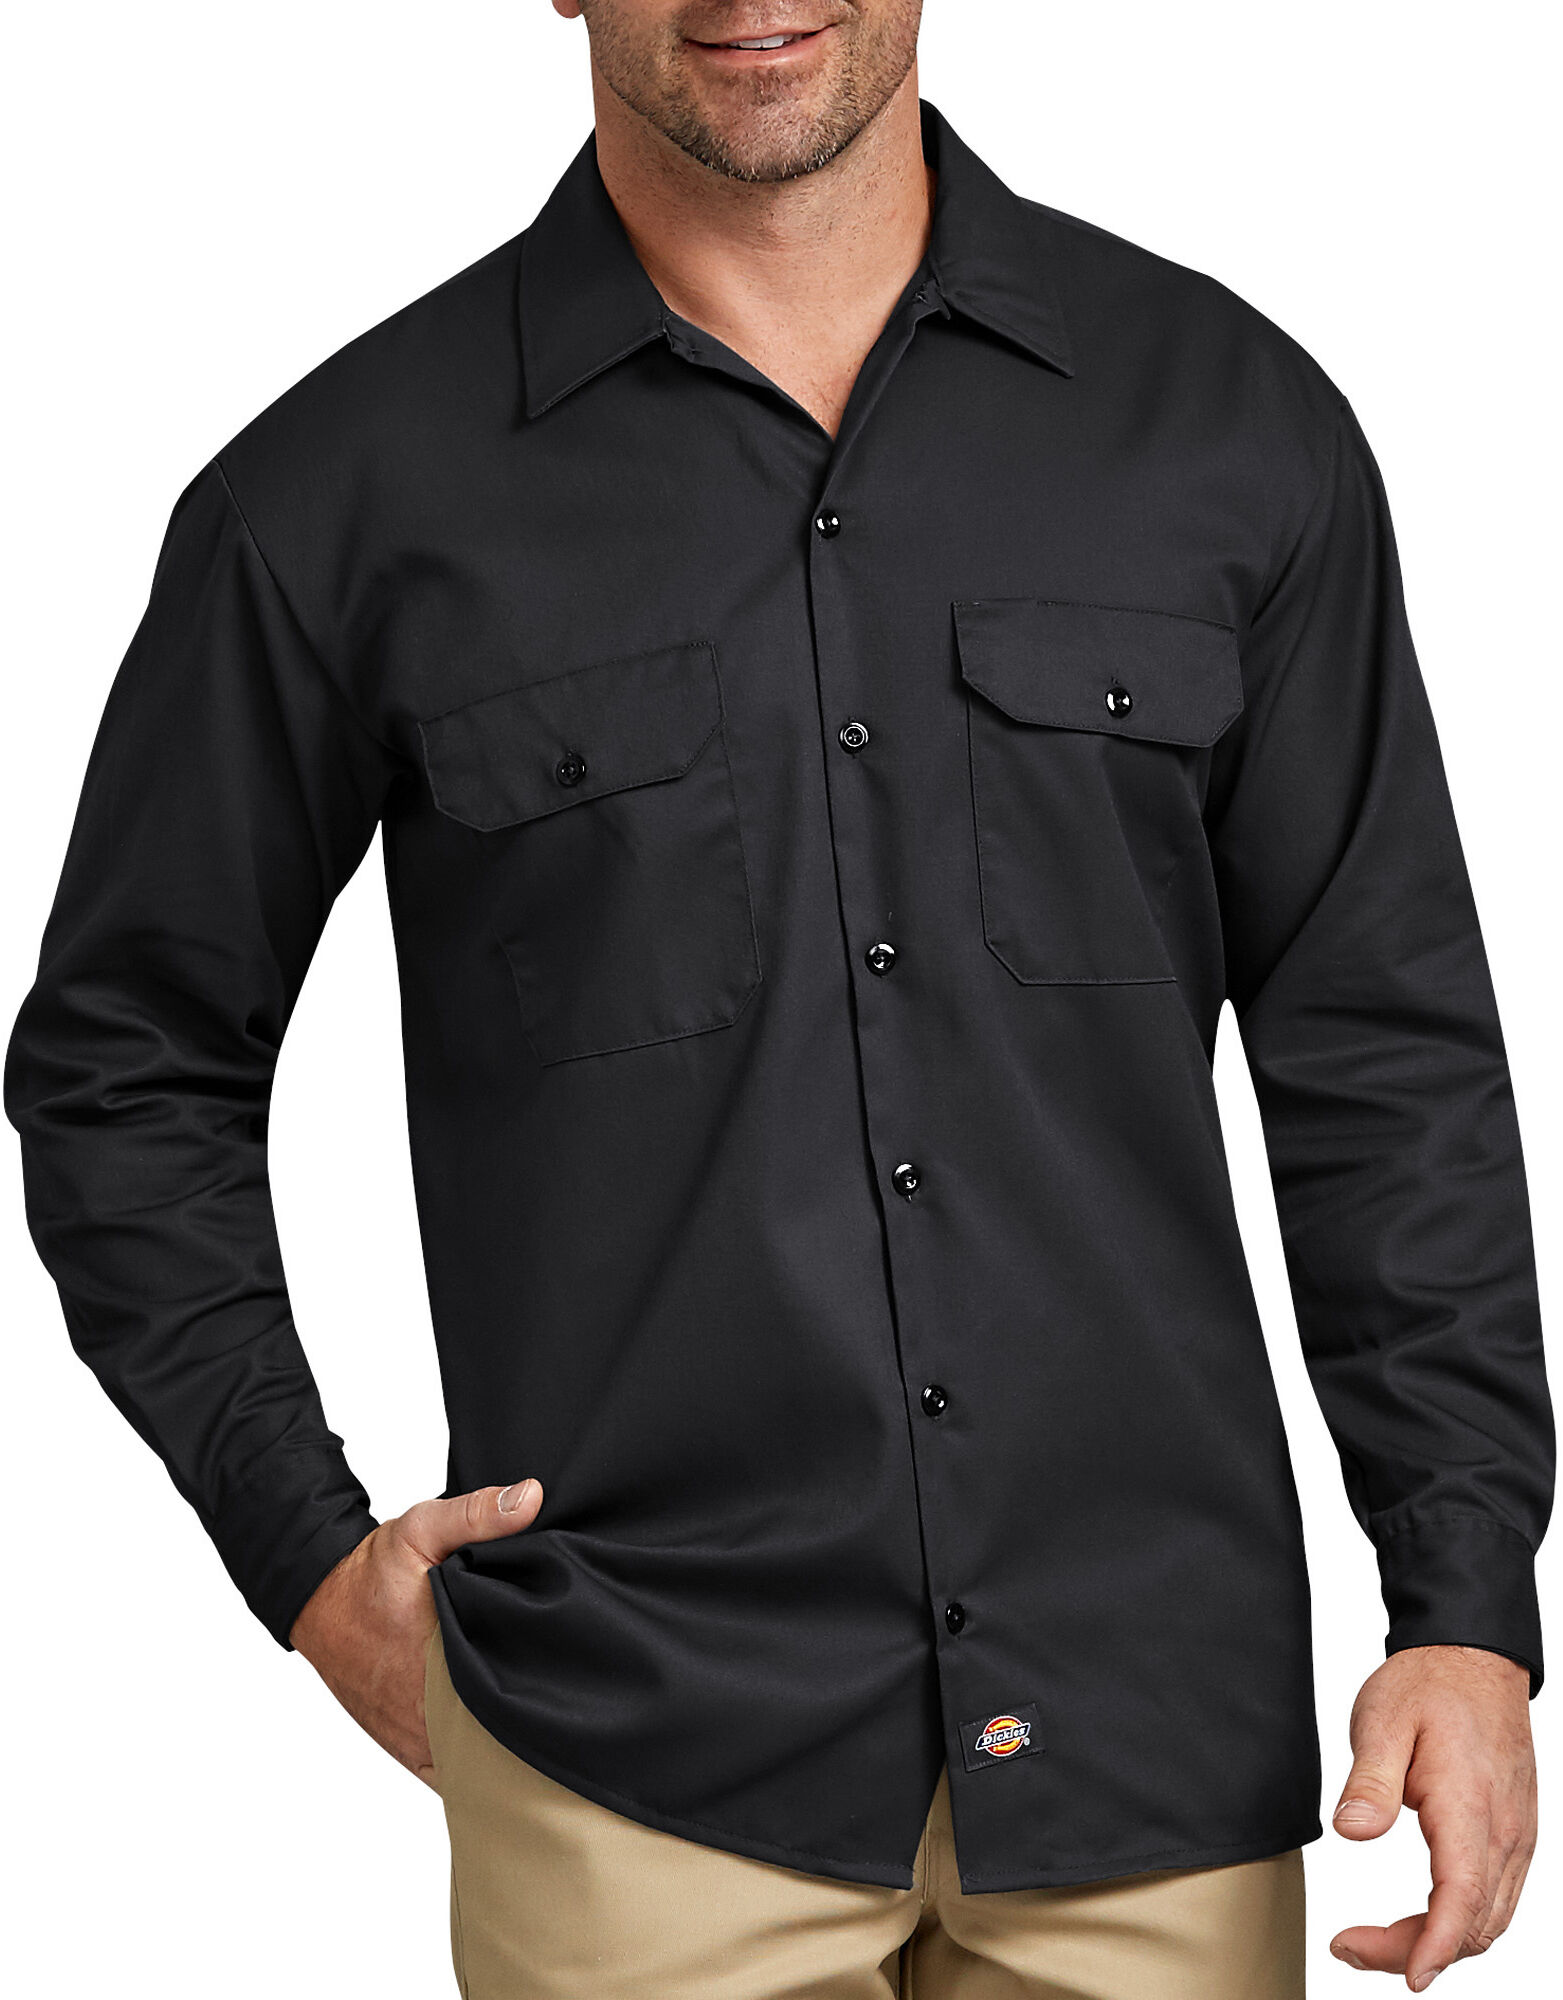 Shop the collection of men's work shirts & collared shirts at Dickies. Colors & styles are available for any profession, from FR to hi-vis to performance. Williamson-Dickie Mfg. Co.